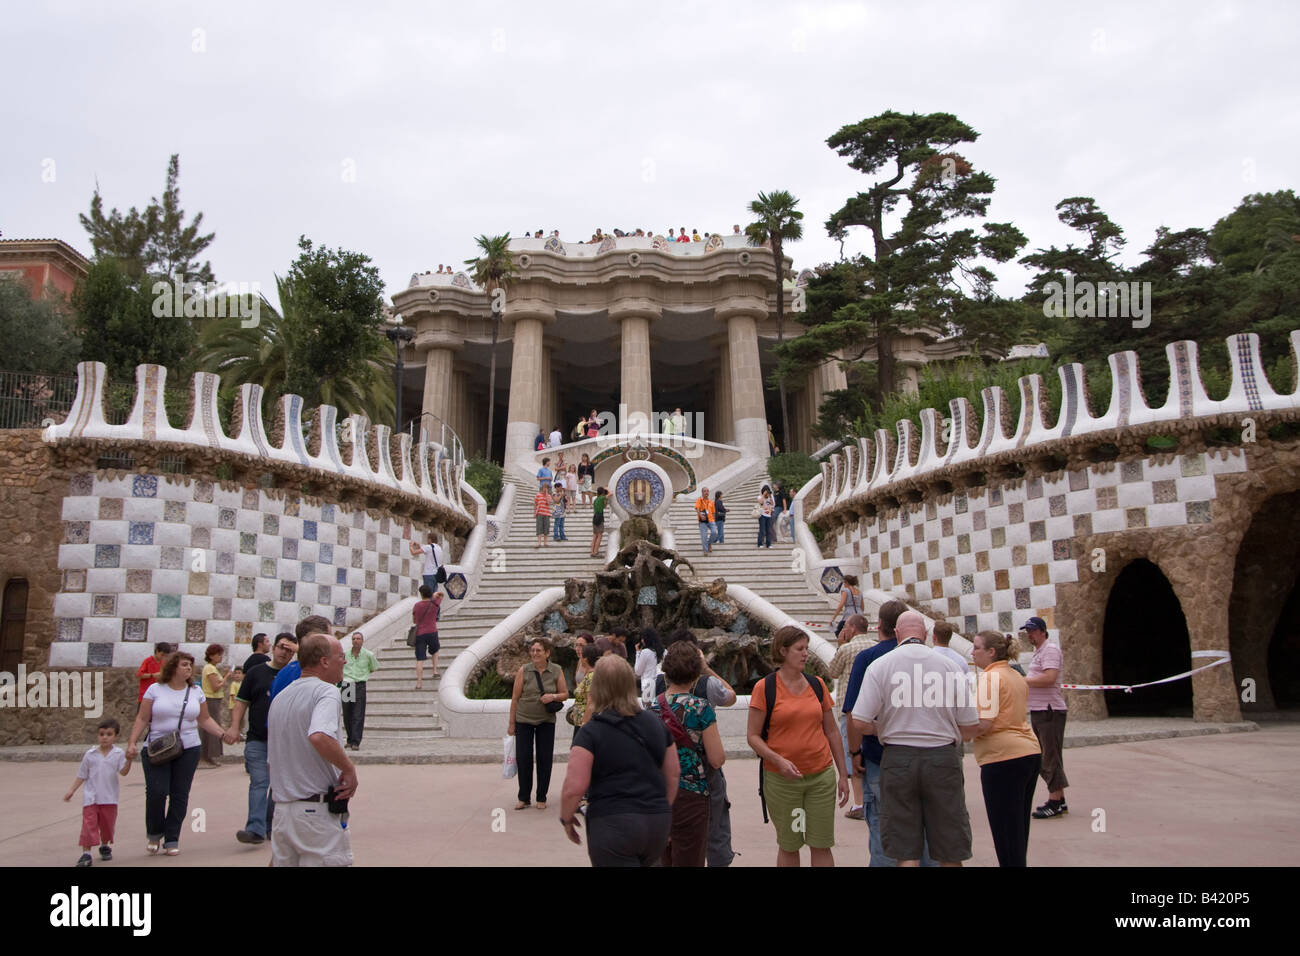 Entrance to Parc Guell in Barcelona Spain - Stock Image